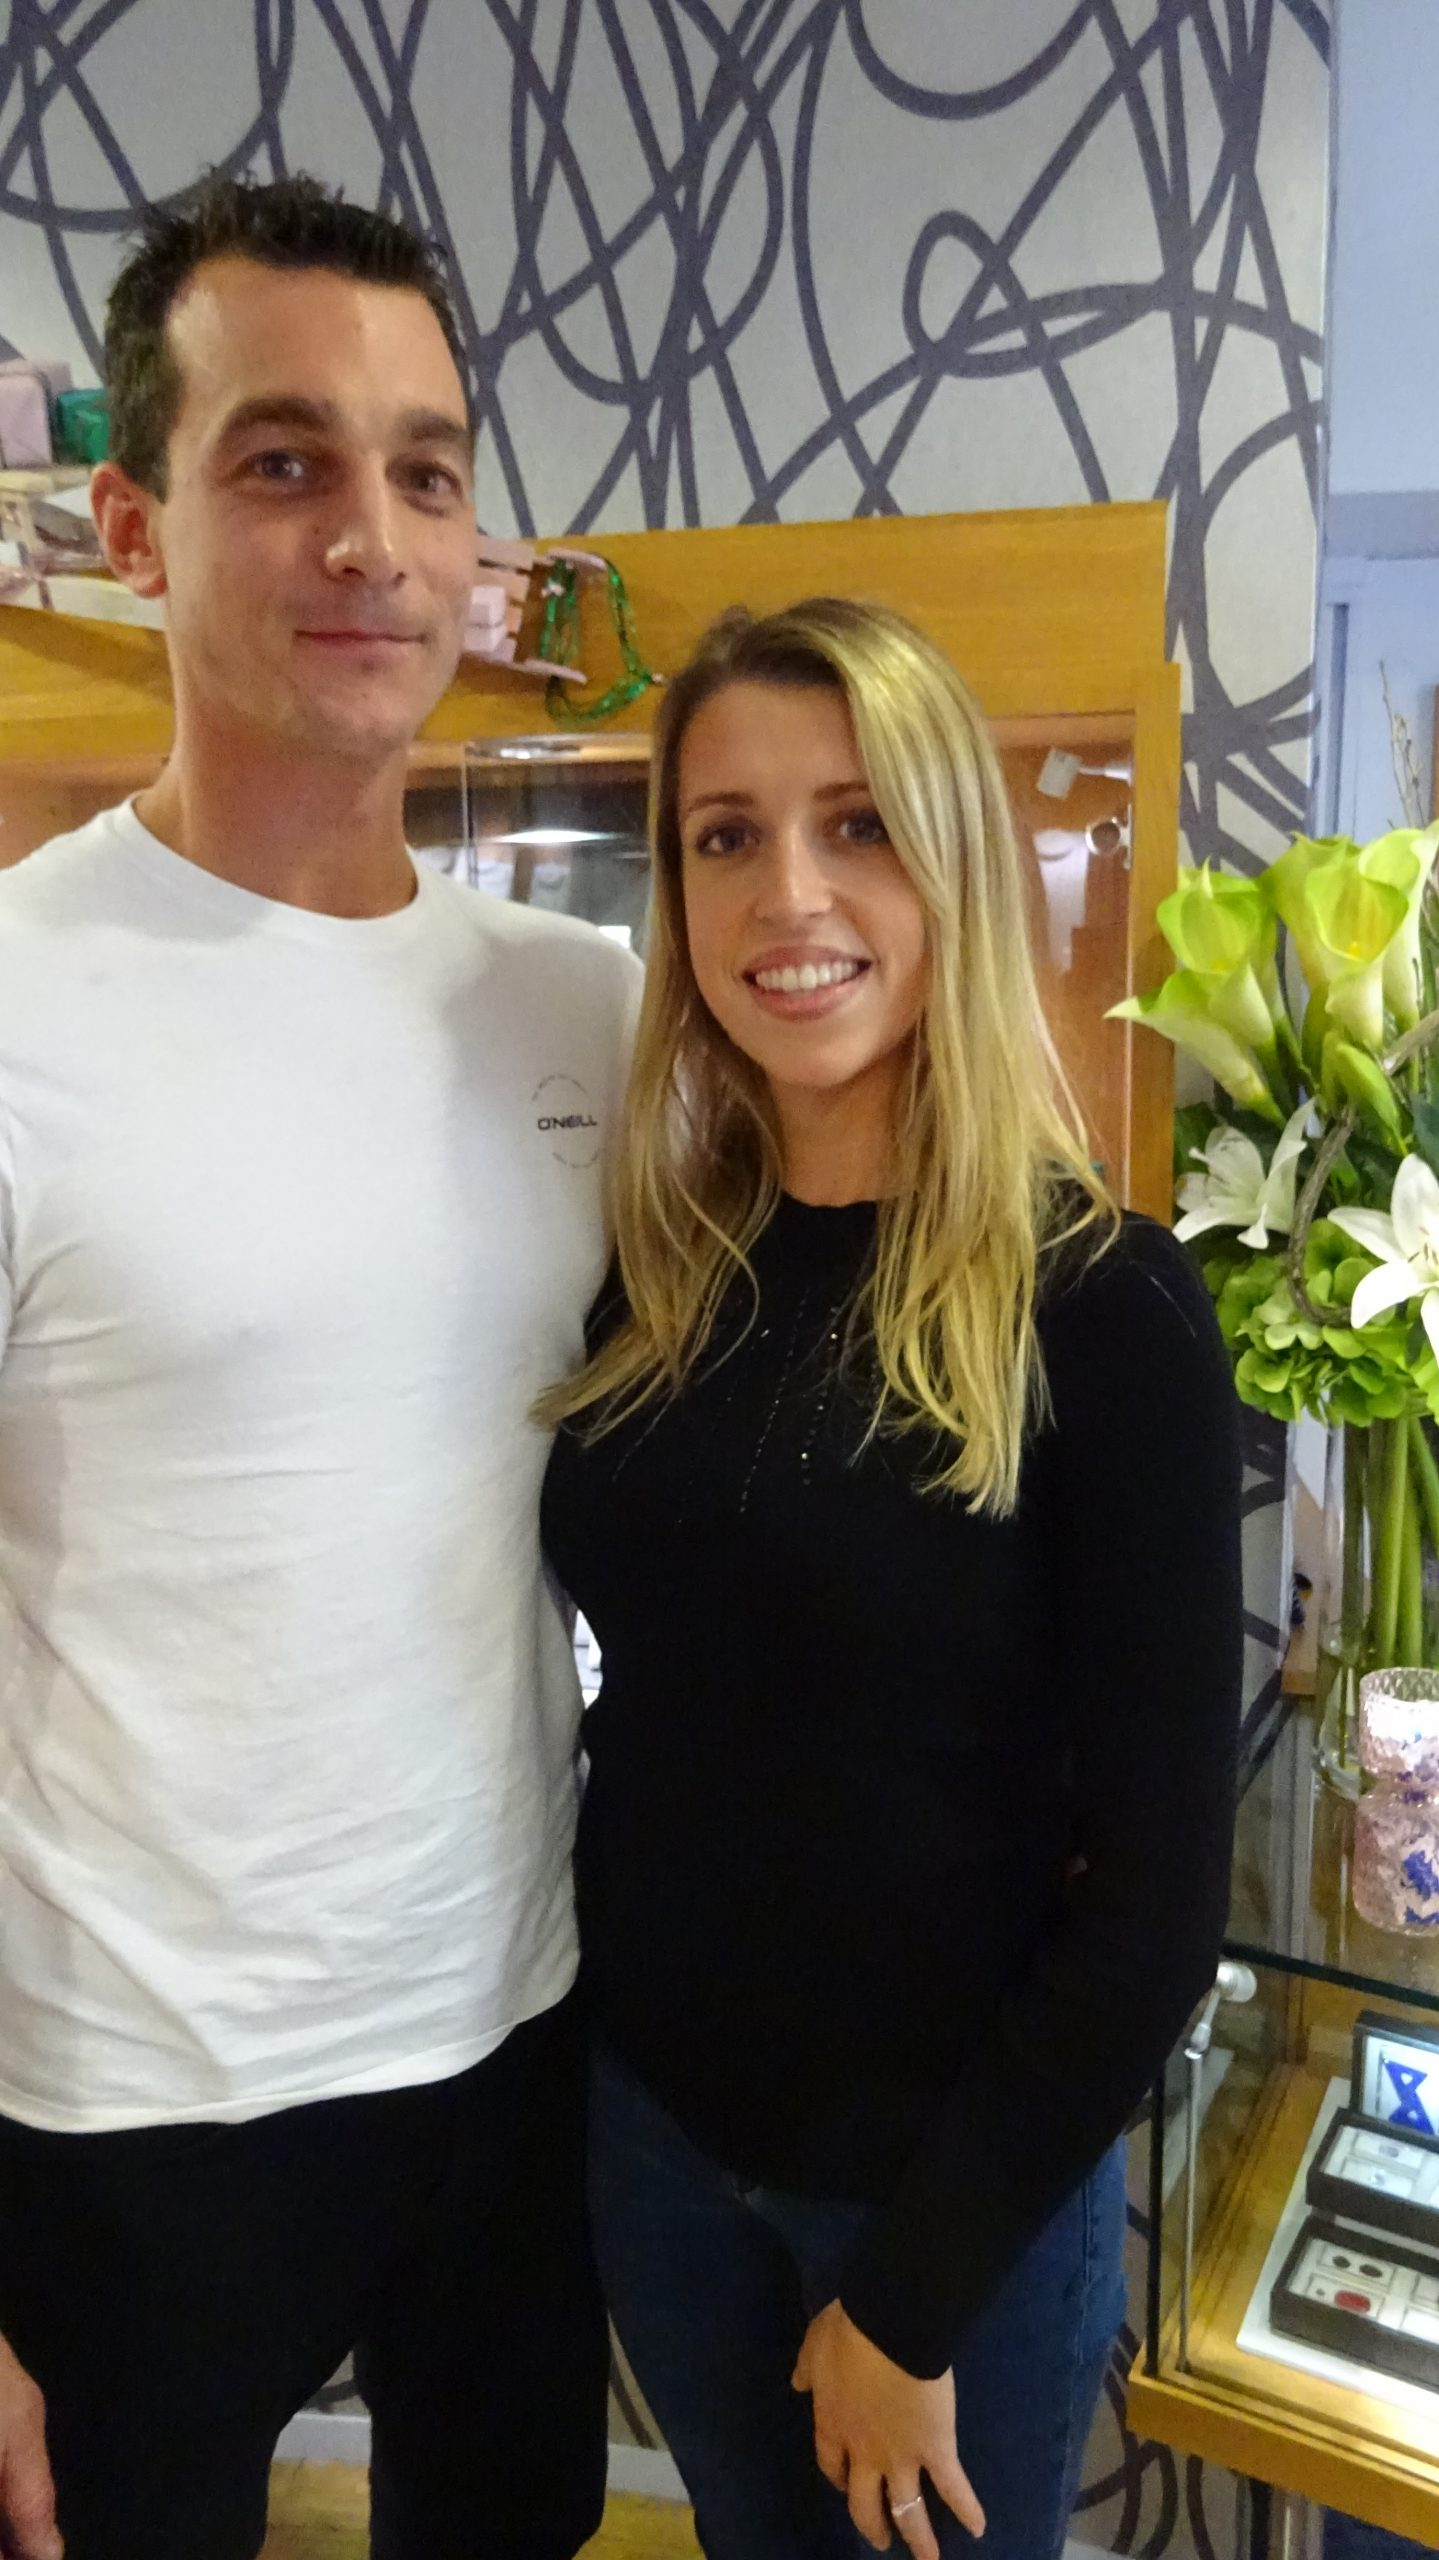 engaged couple announcement happy customers seeing engagement ring first time